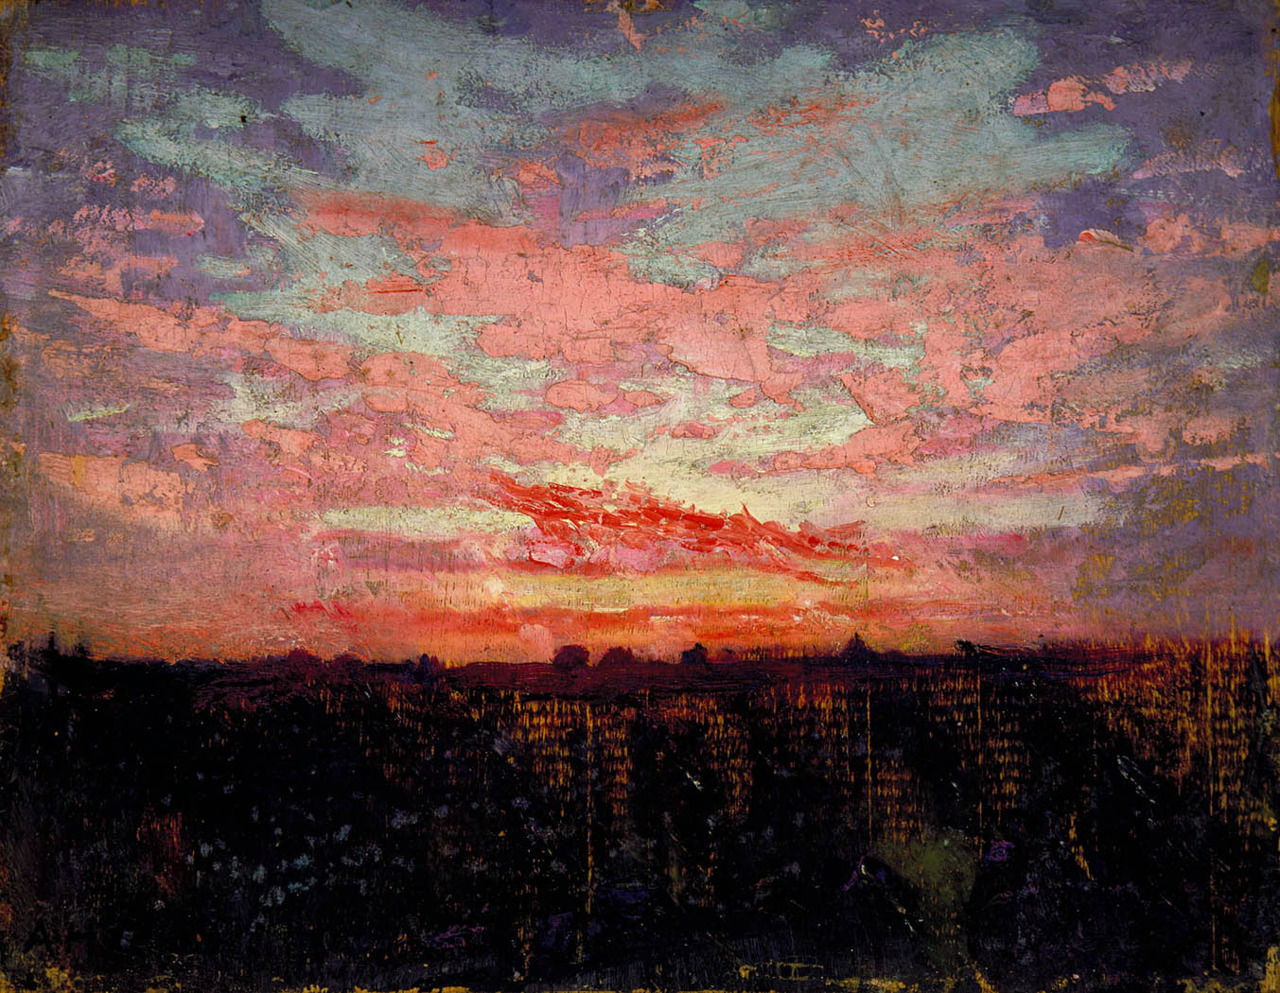 Abbott Handerson Thayer - Sunset